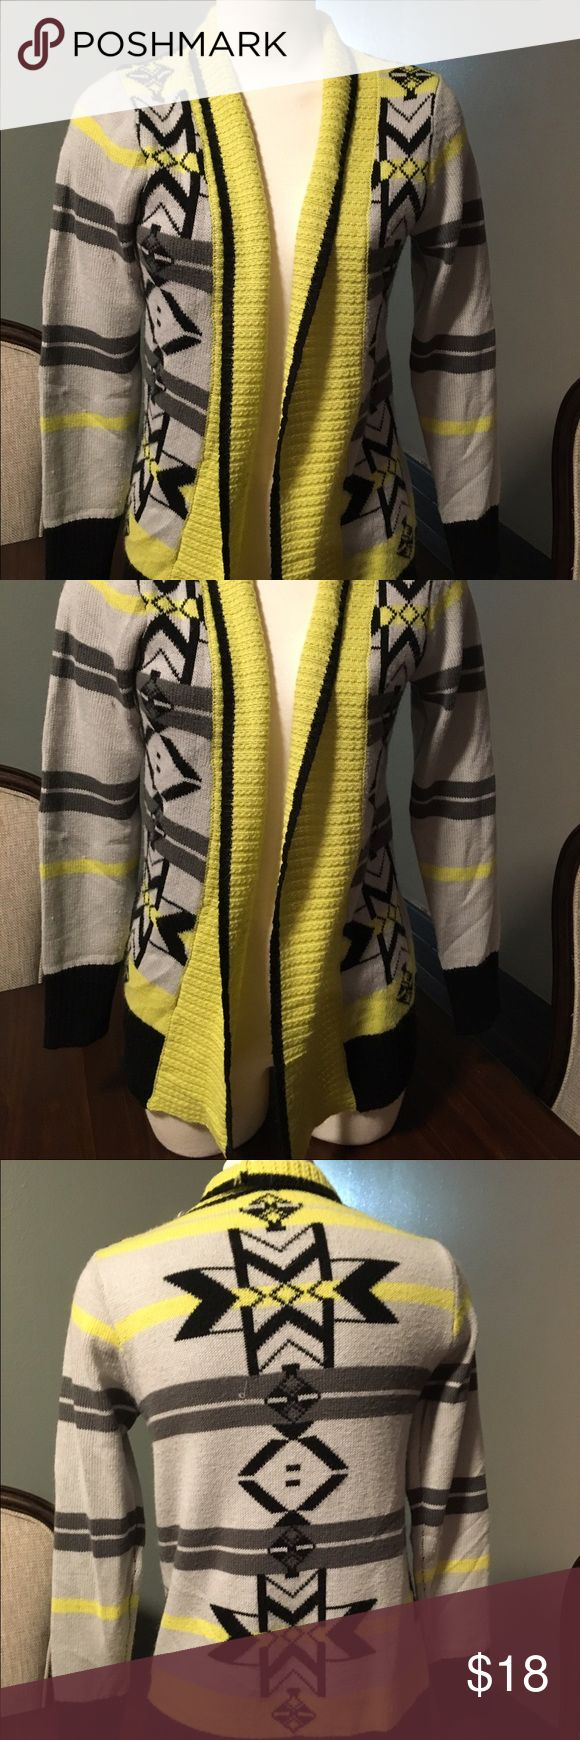 Super cute cardigan Nothing wrong with it, very warm and comfy! Sweaters Cardigans